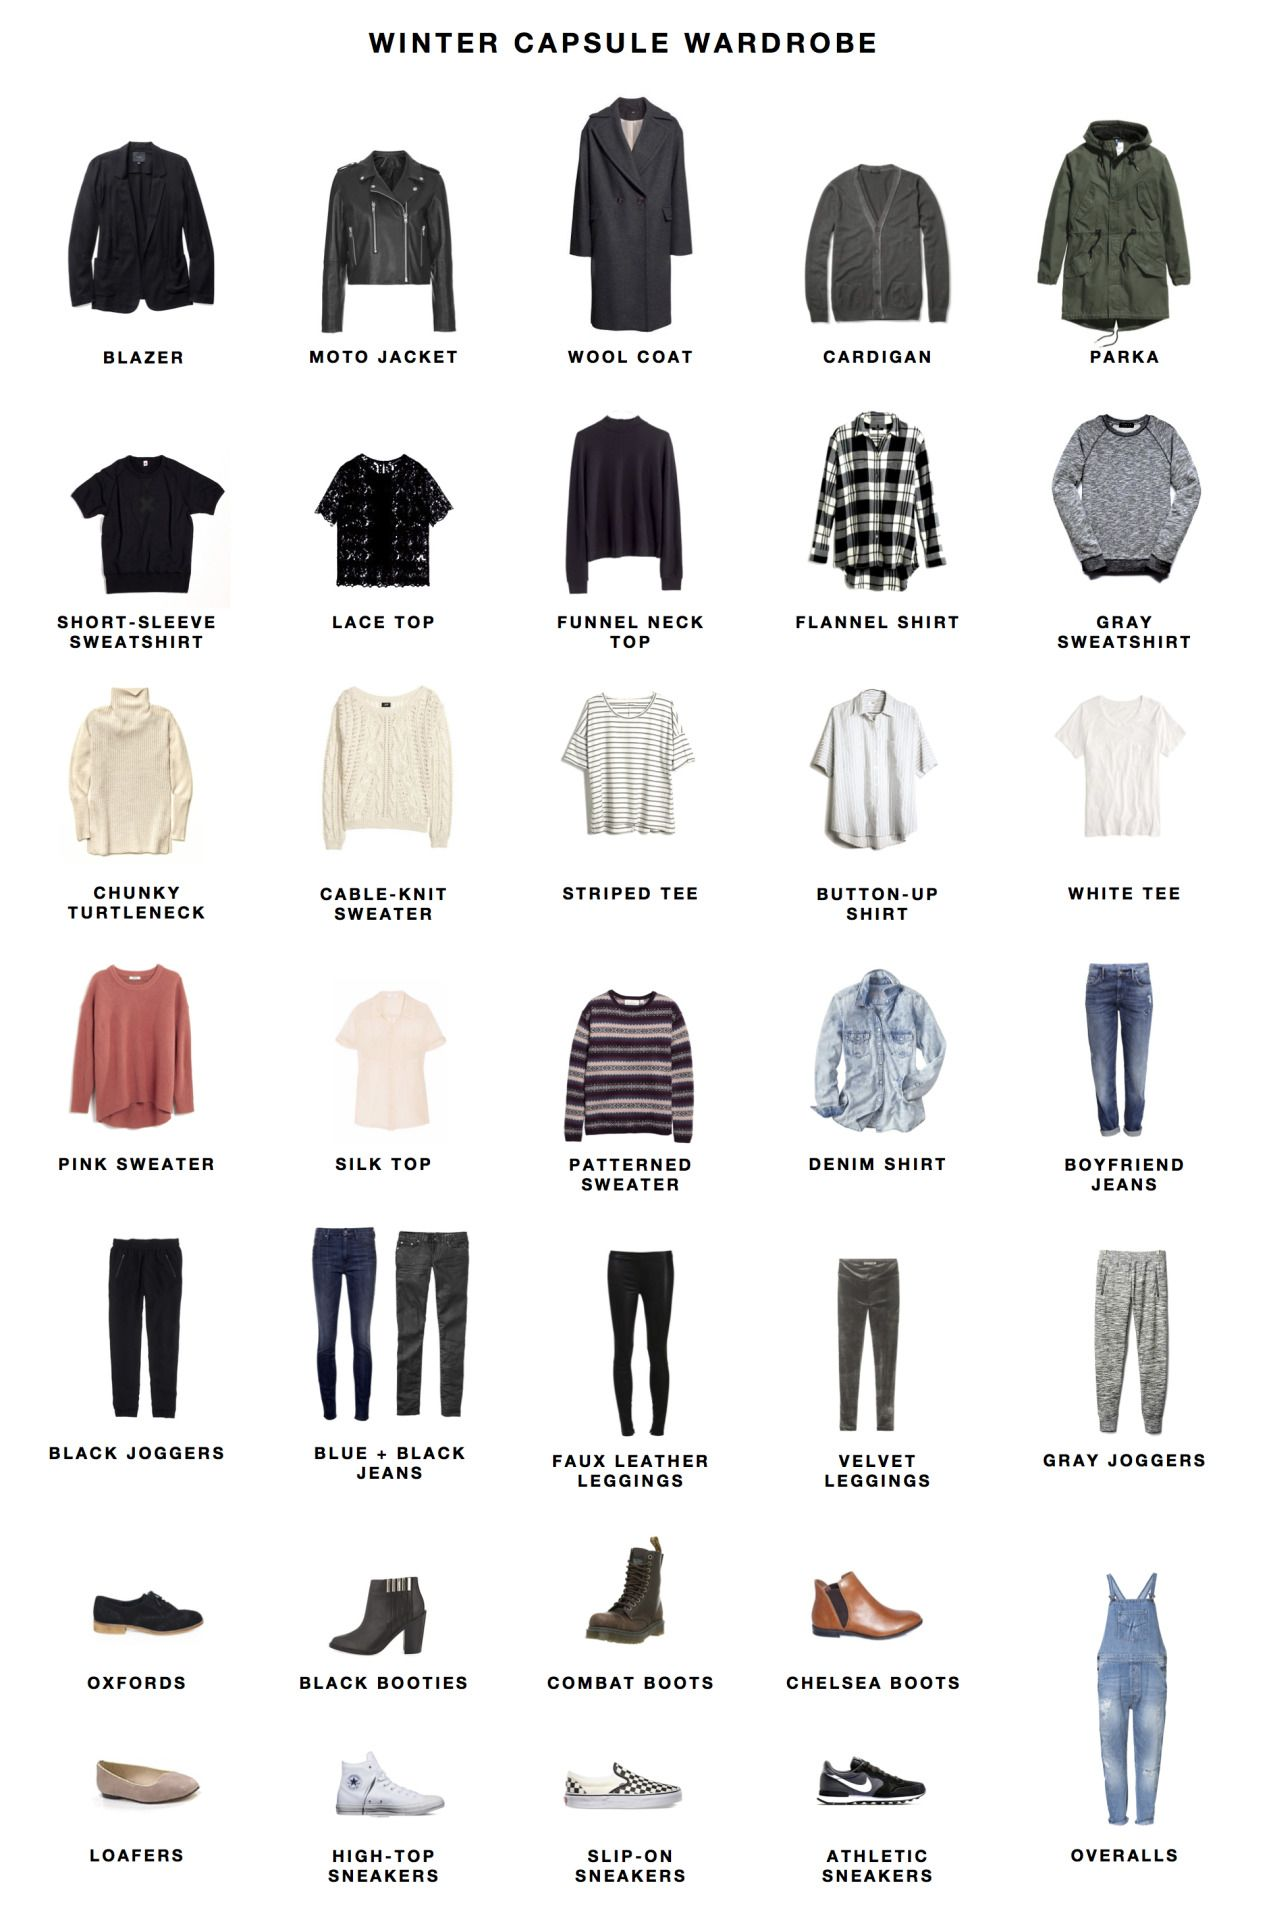 Winter 2015 Capsule Wardrobe Winter Is Here, And So Is My